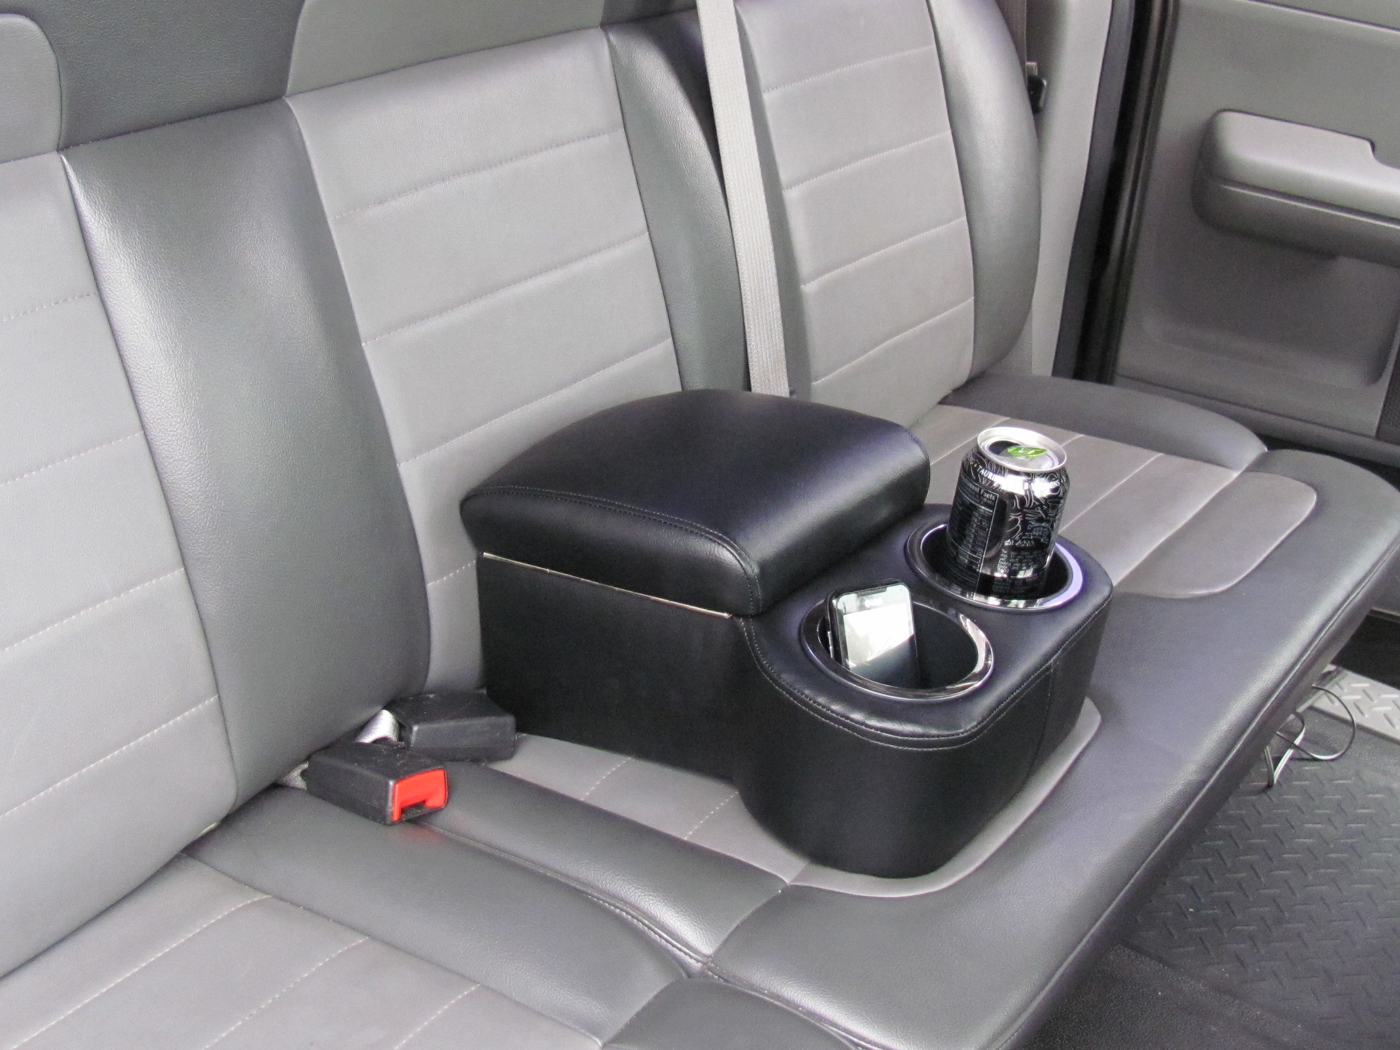 car cup holder console bench seat cup holder red blue grey white black ebay. Black Bedroom Furniture Sets. Home Design Ideas